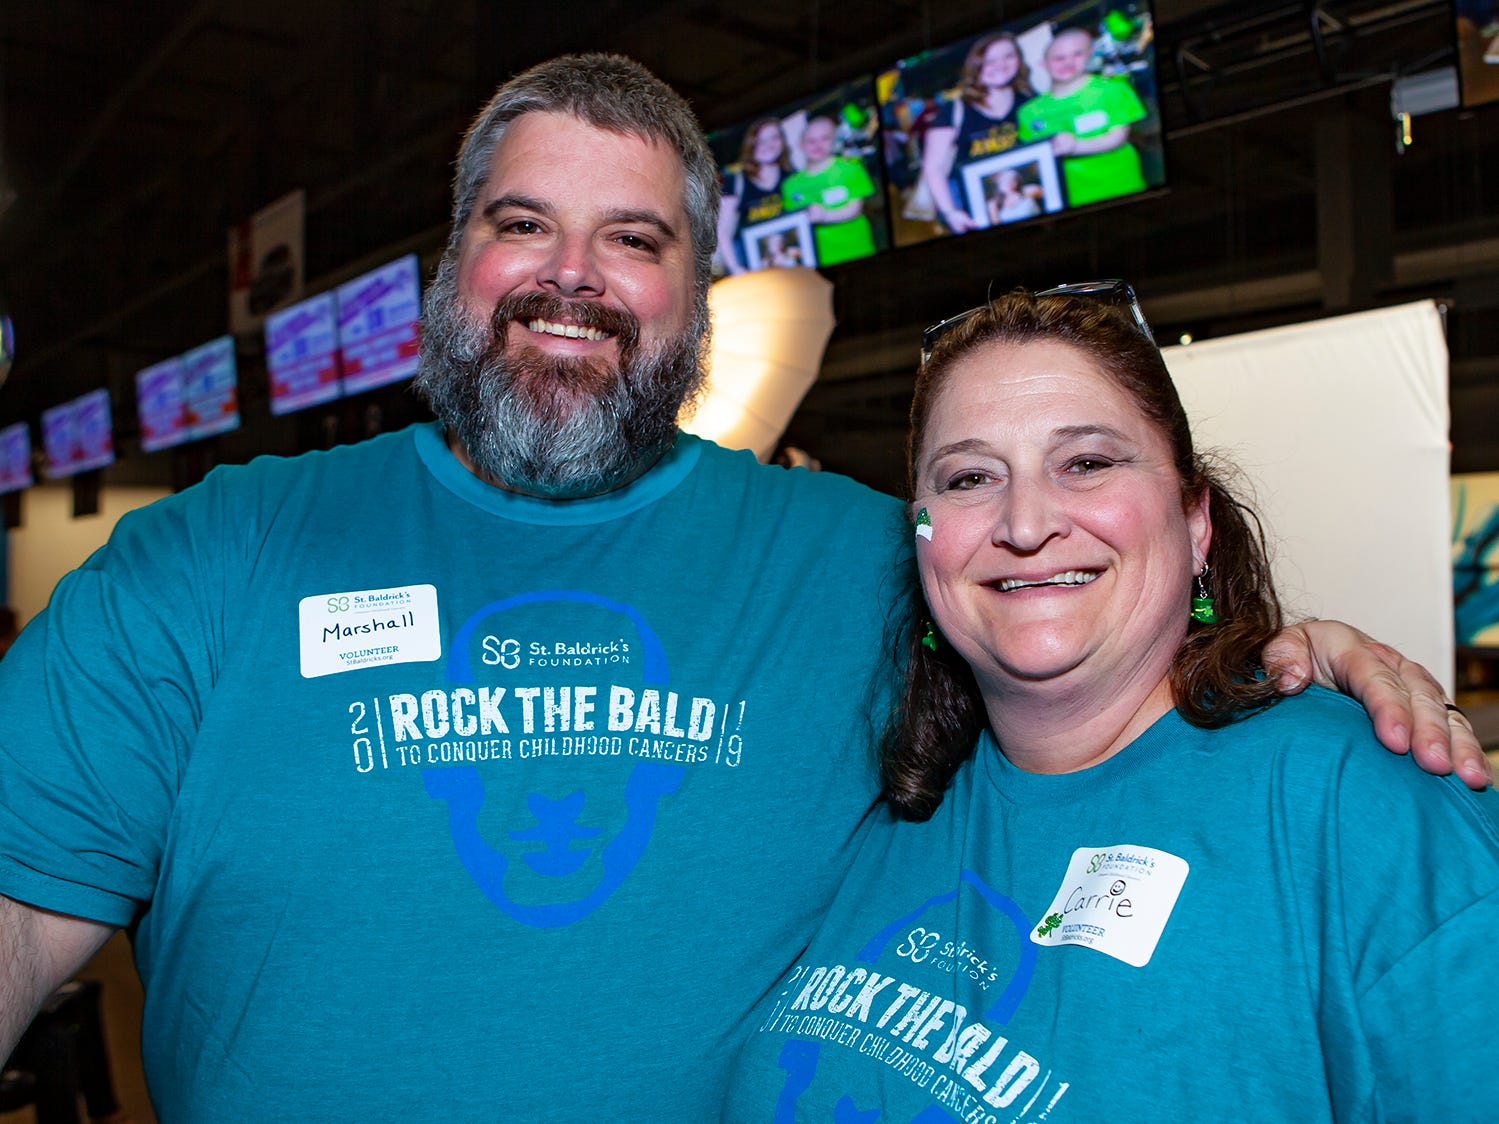 Master of Ceremonies Marshall Campbell with Carrie Fitzgerald at the ninth annual Bald in the Boro fundraiser for the St. Baldrick's Foundation. The event was held Friday, March 15, 2019 at Lanes, Trains and Automobiles in Murfreesboro.